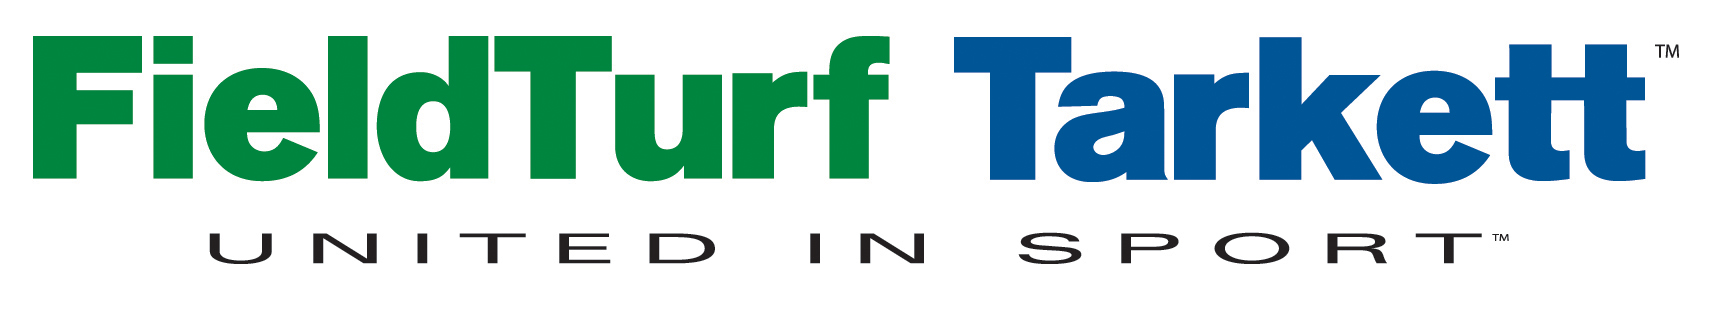 FieldTurf Tarkett Logo